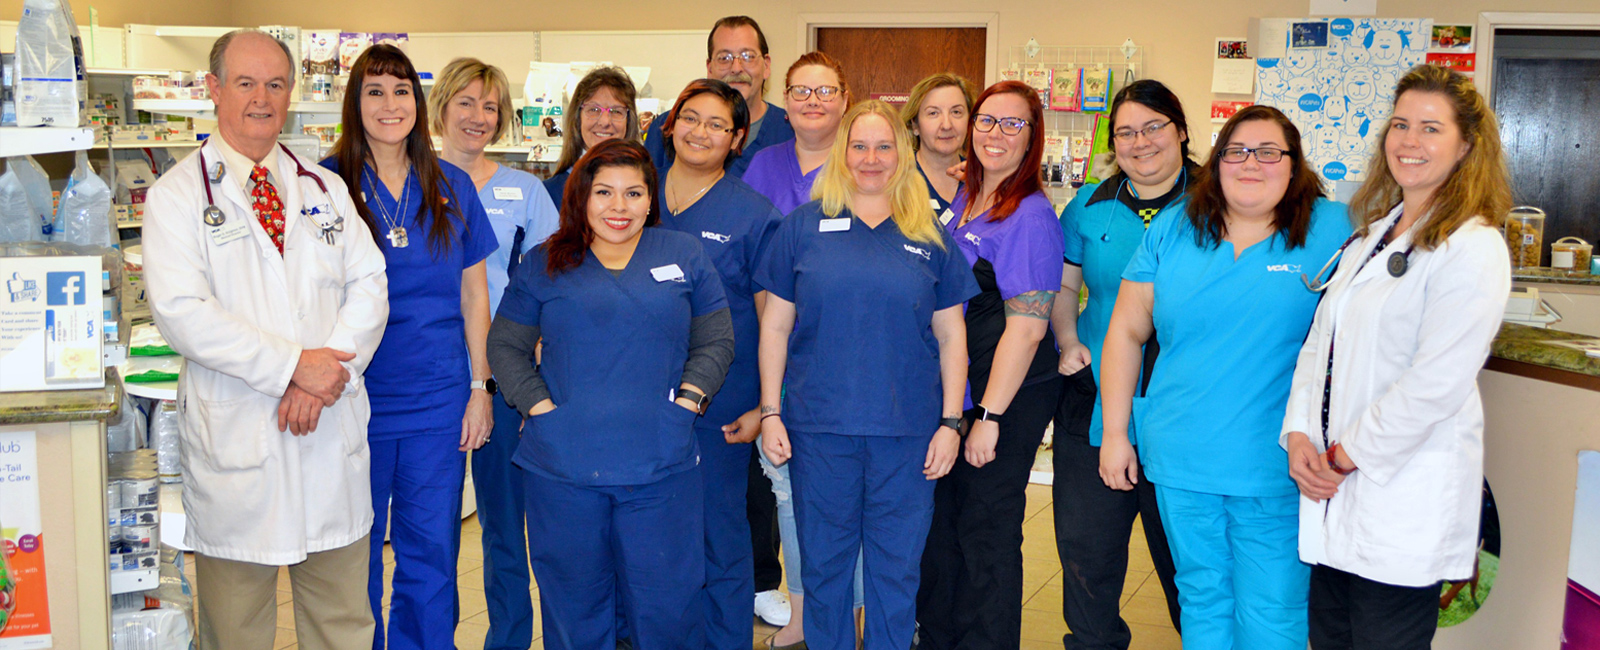 Team Picture of VCA Spring Mountain Animal Hospital